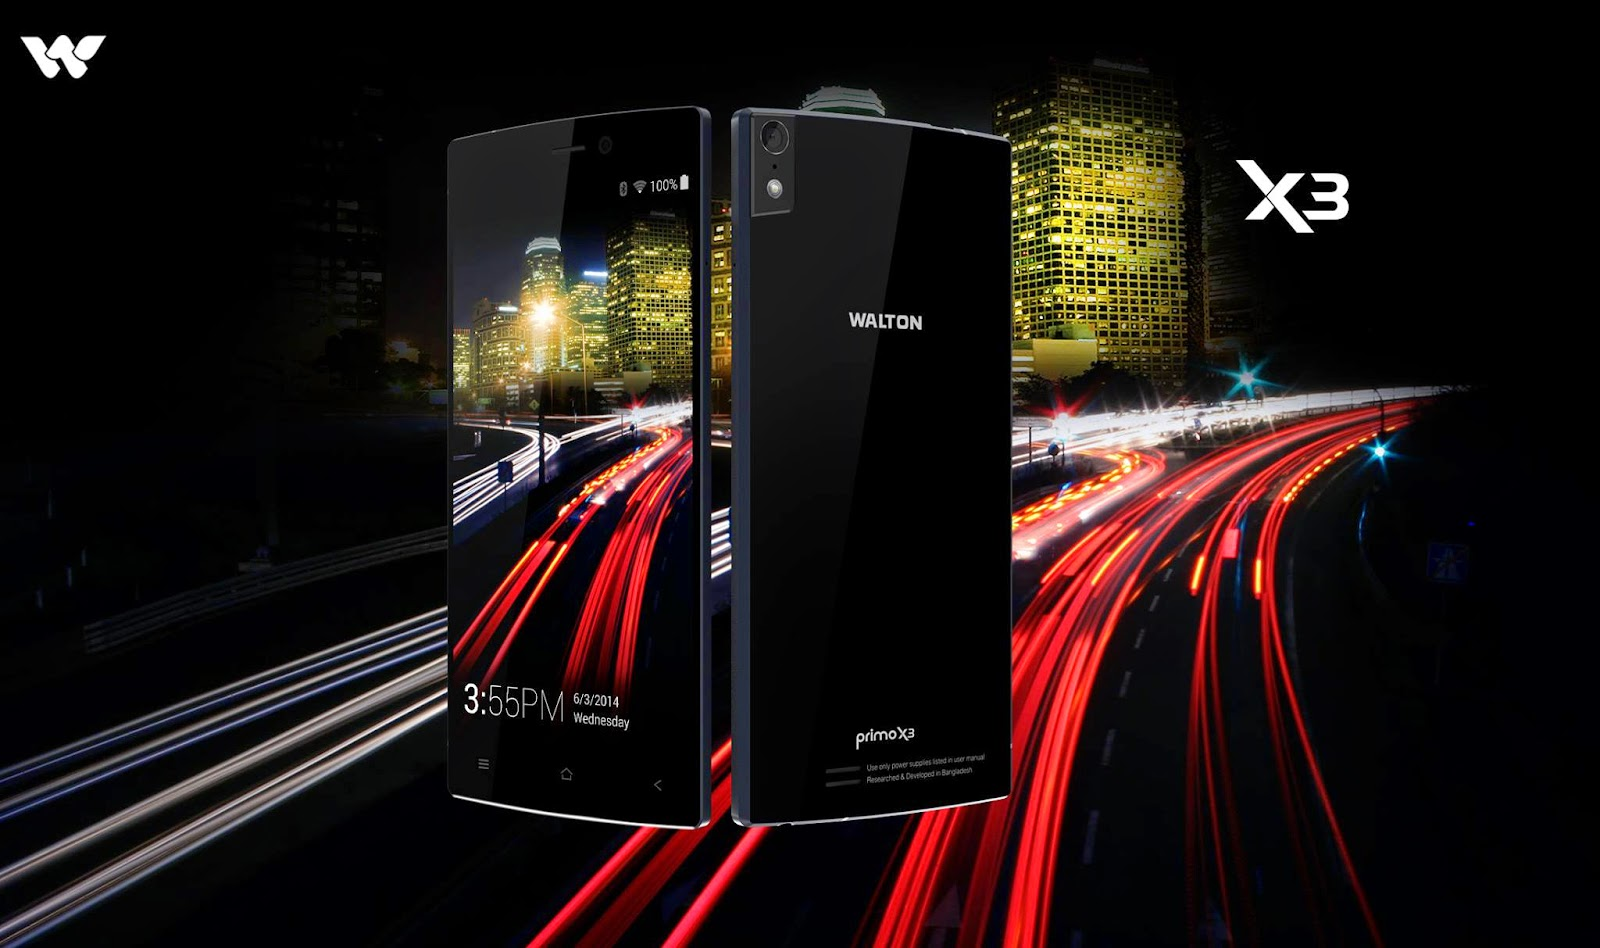 walton x3 review,specification of x3,first slimmest smartphone in the world